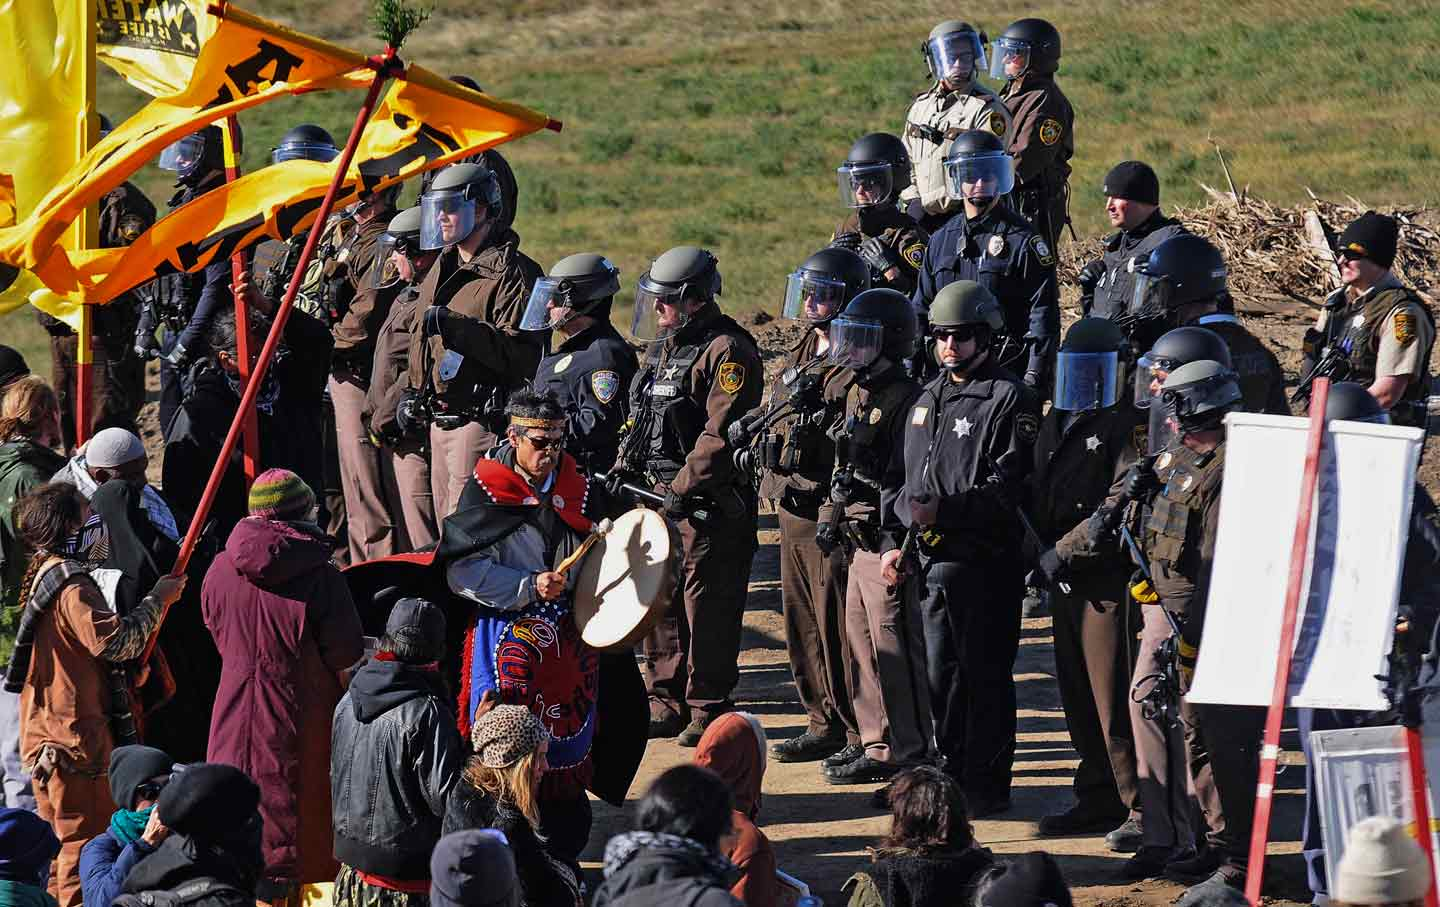 Dakota Pipeline police